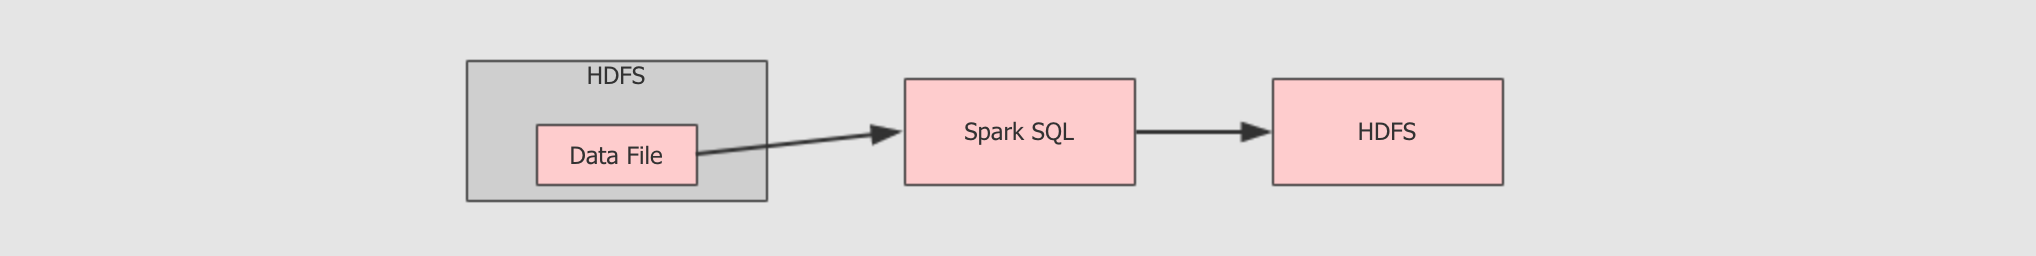 Spark學習進度11-Spark Streaming&Structured Streaming